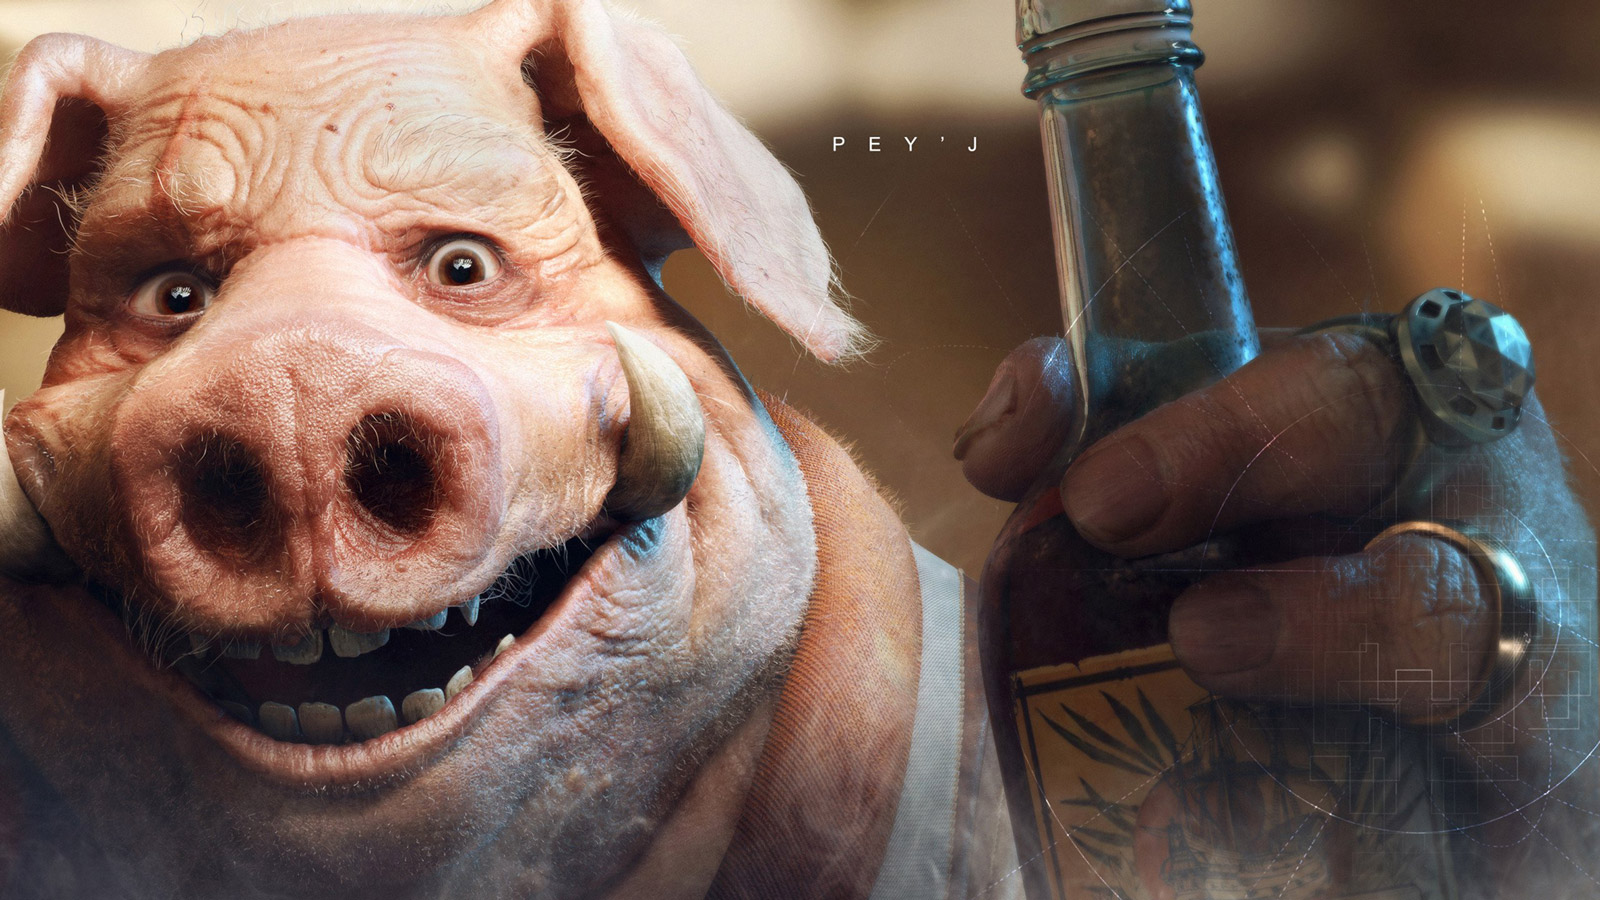 Free Beyond Good and Evil 2 Wallpaper in 1600x900